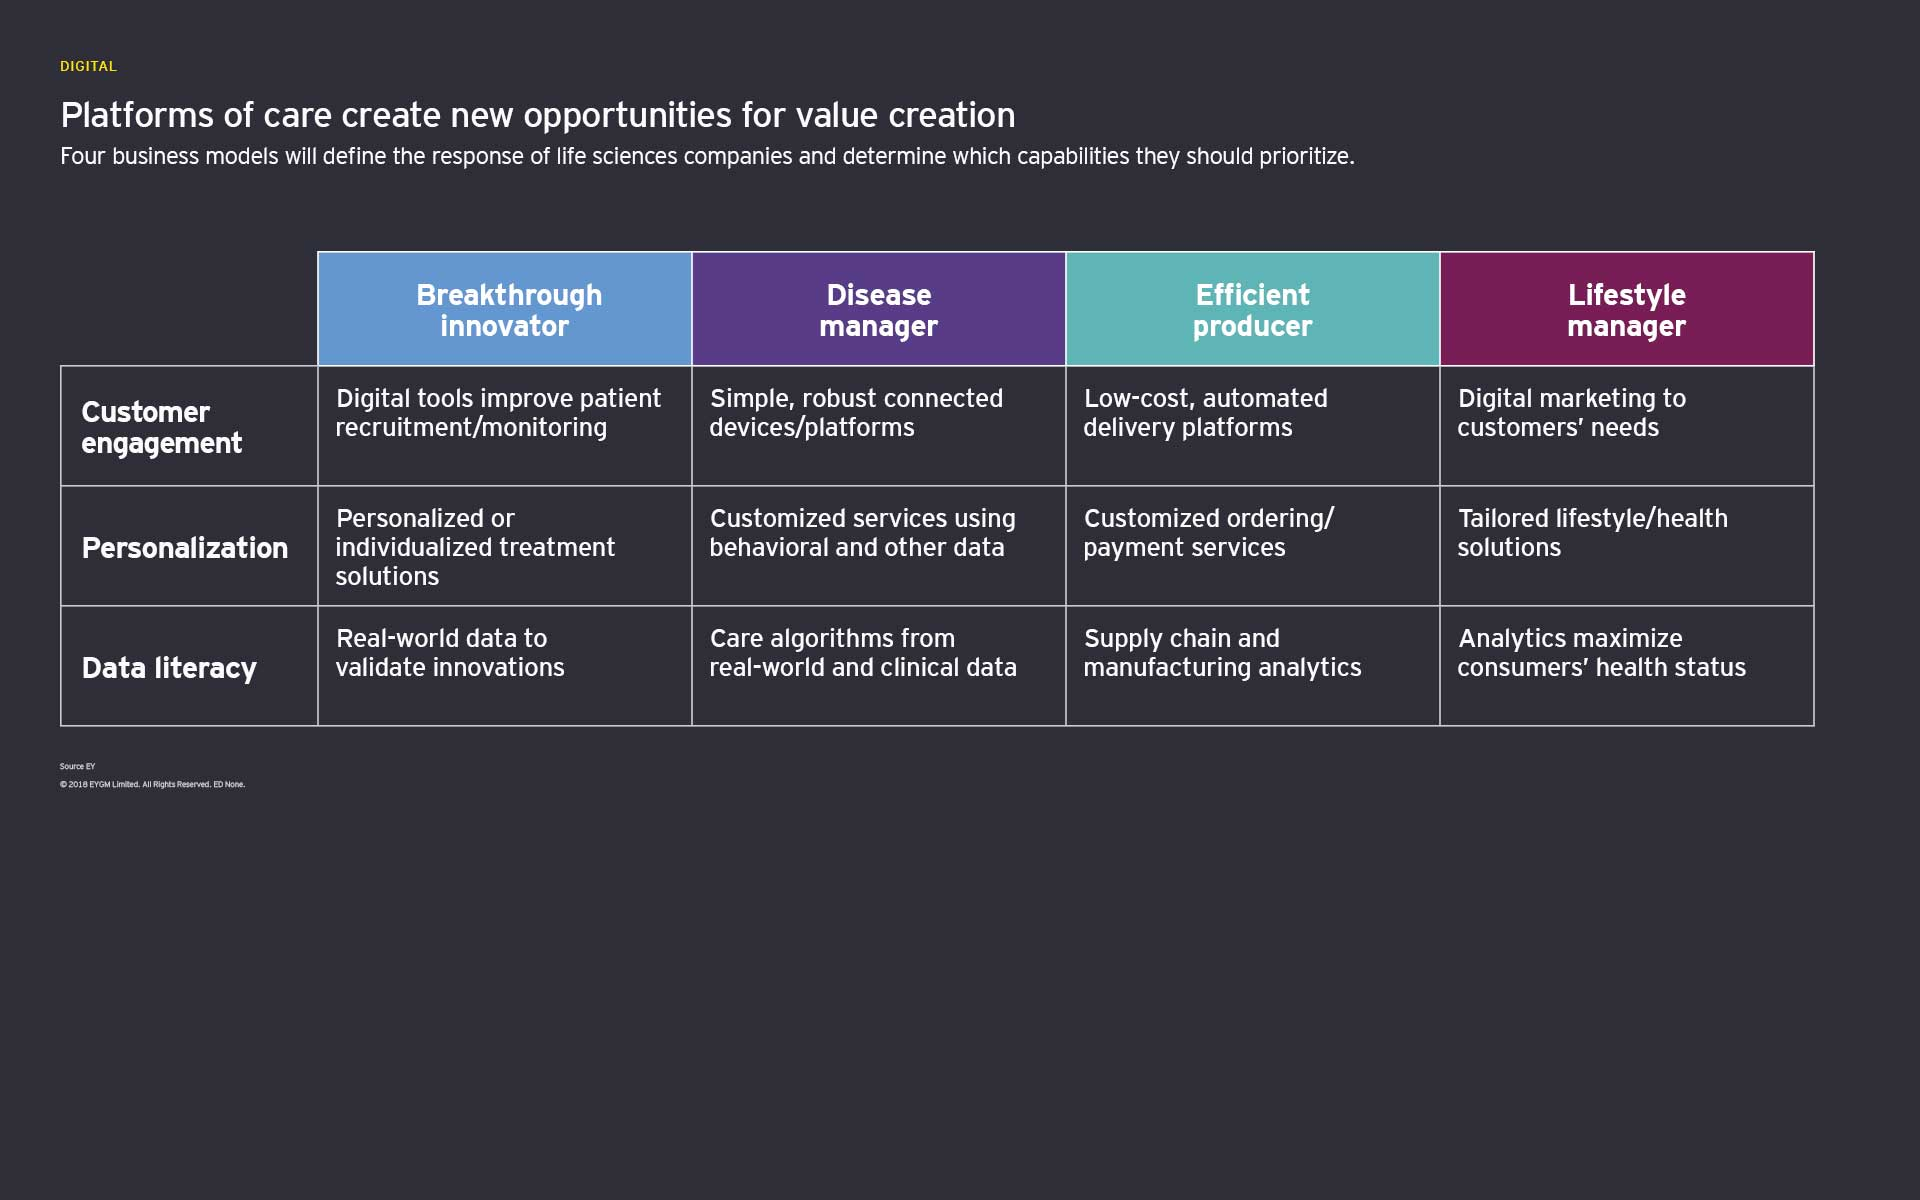 Platforms of care create new opportunities